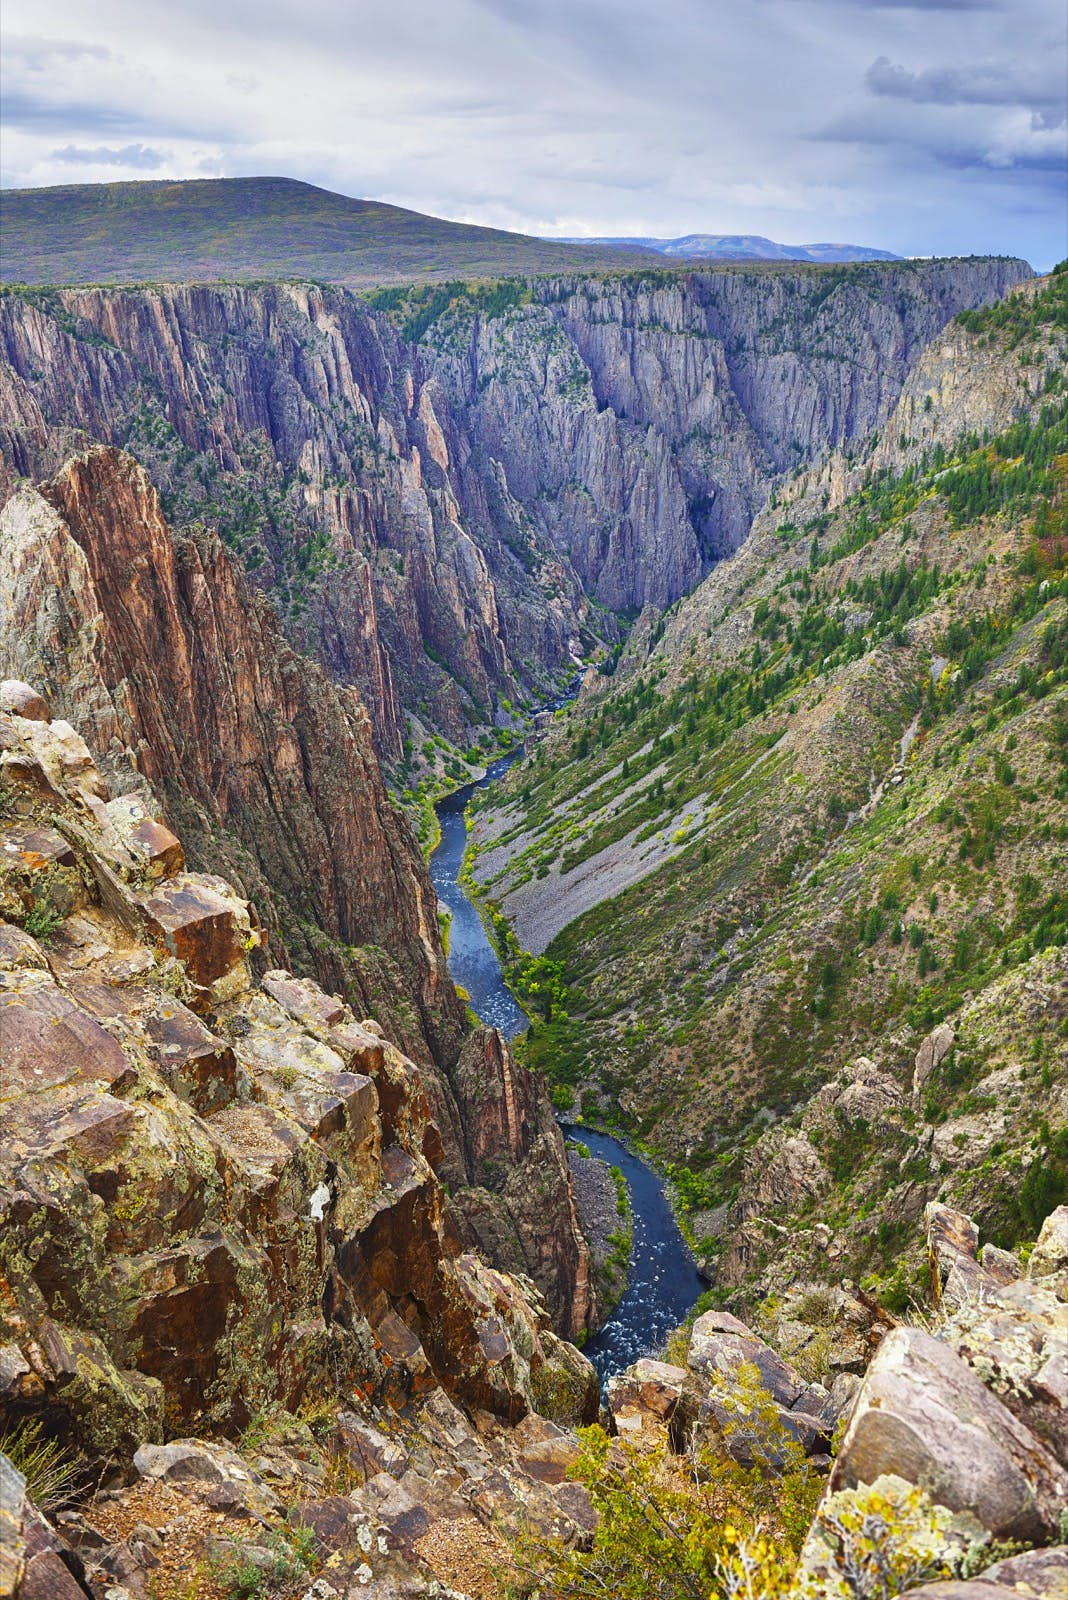 The deep, rocky canyon of the Black Canyon Of The Gunnison National Park in Colorado